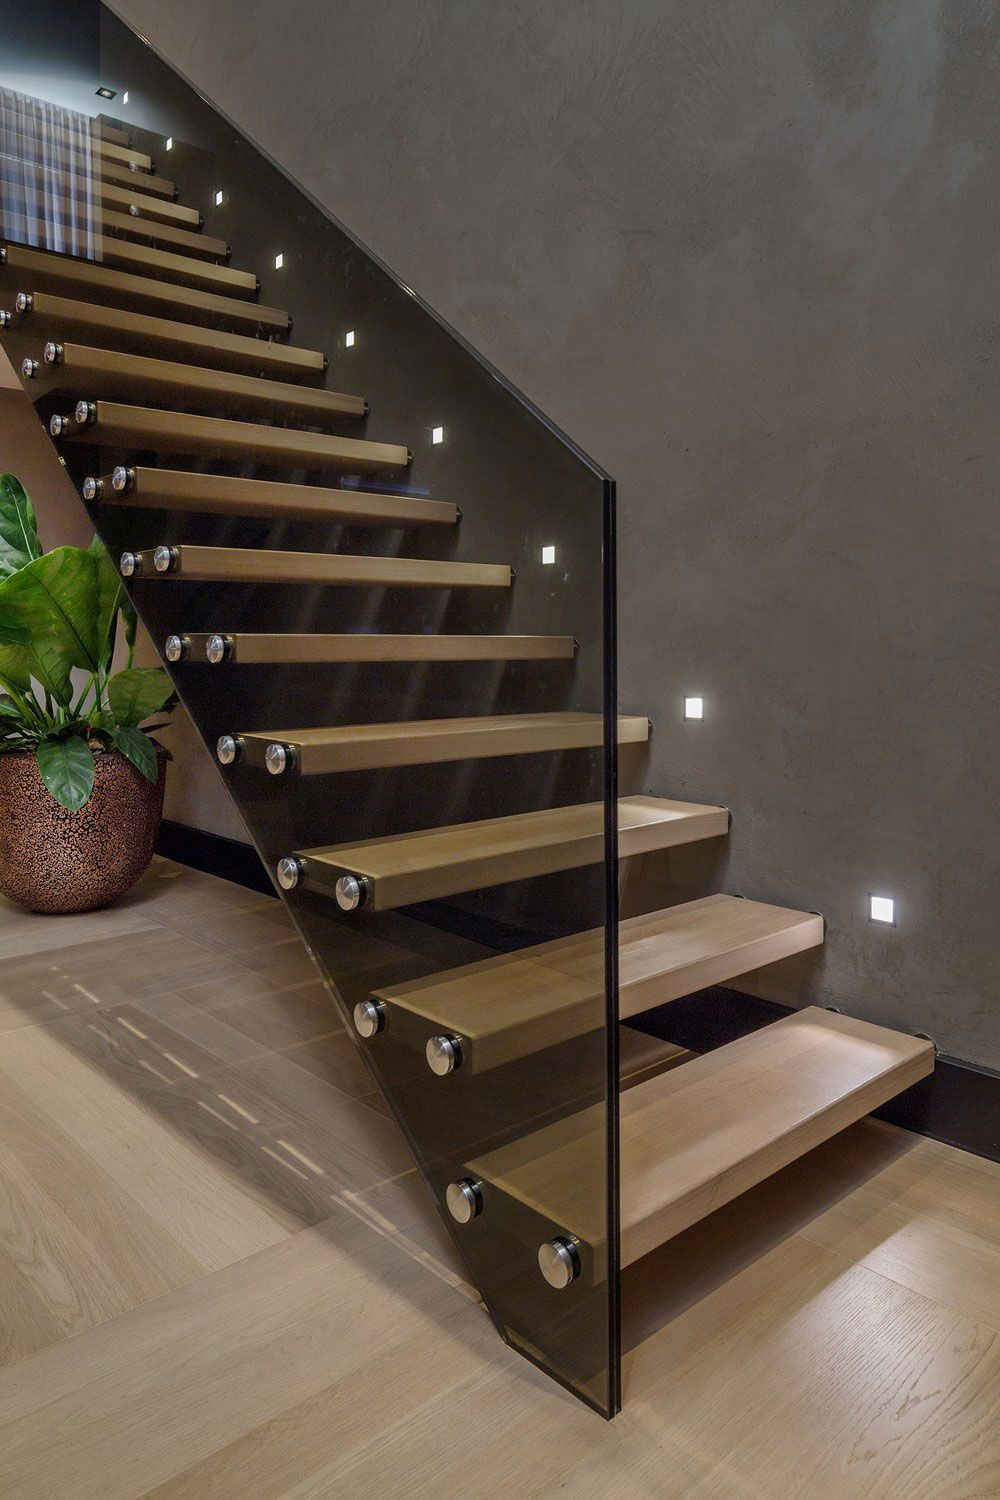 Merveilleux Interior, Contemporary Floating Wooden Sttaircase Idea With Stainless Steel  Nails And Dark Glass Stair Handle To Reflect Modern Rotterdam Residence ...